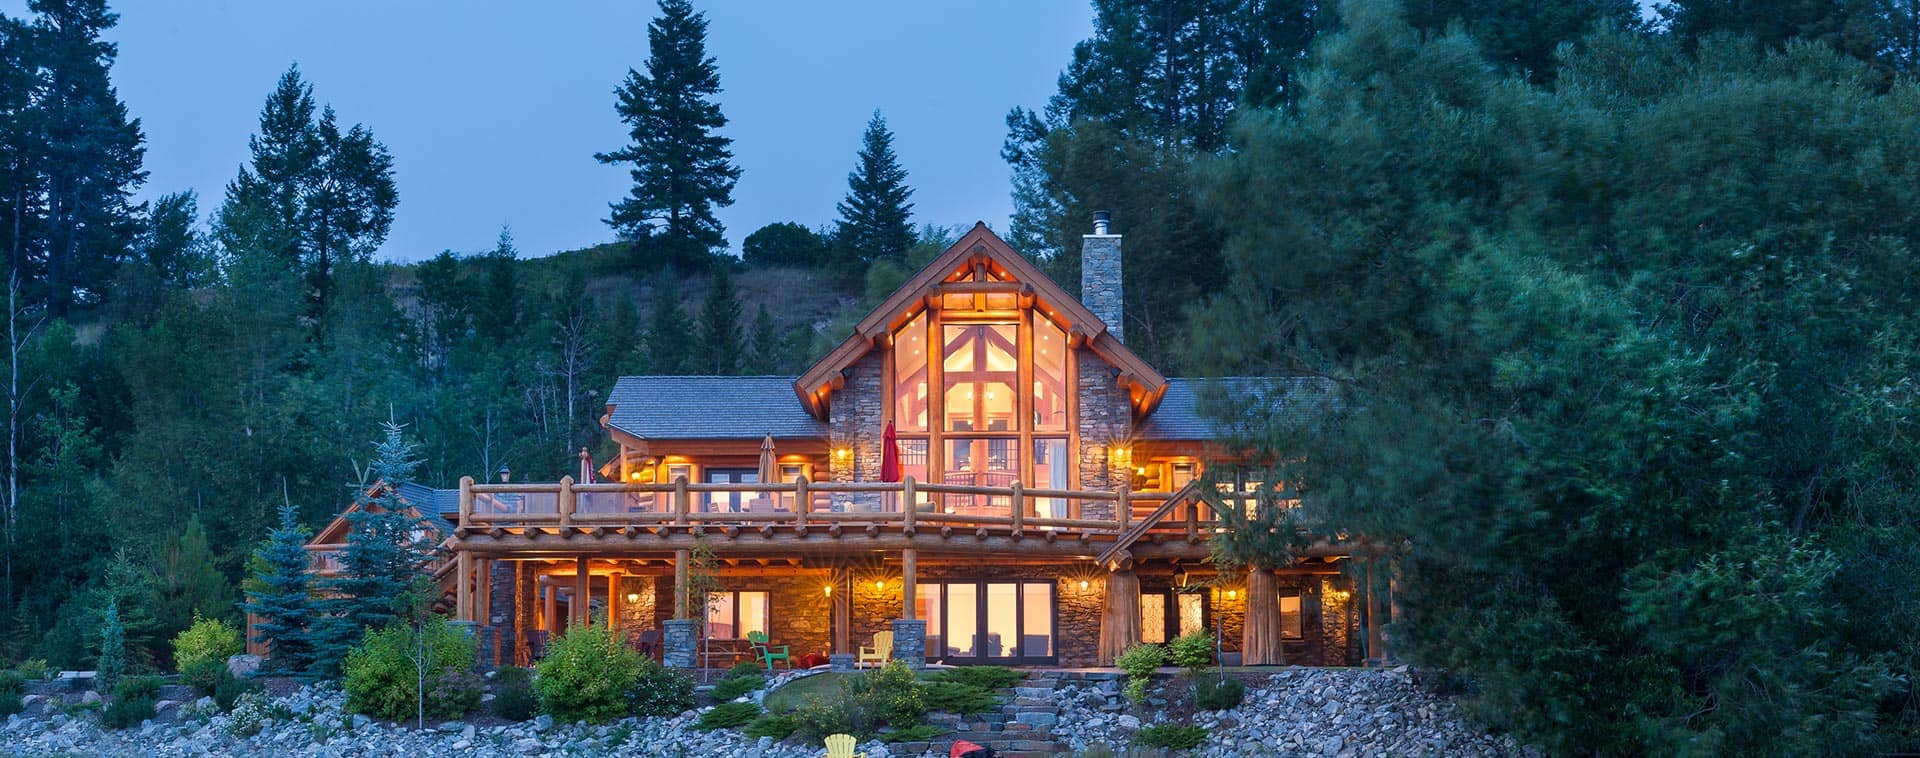 Hybrid Log & Timber Home